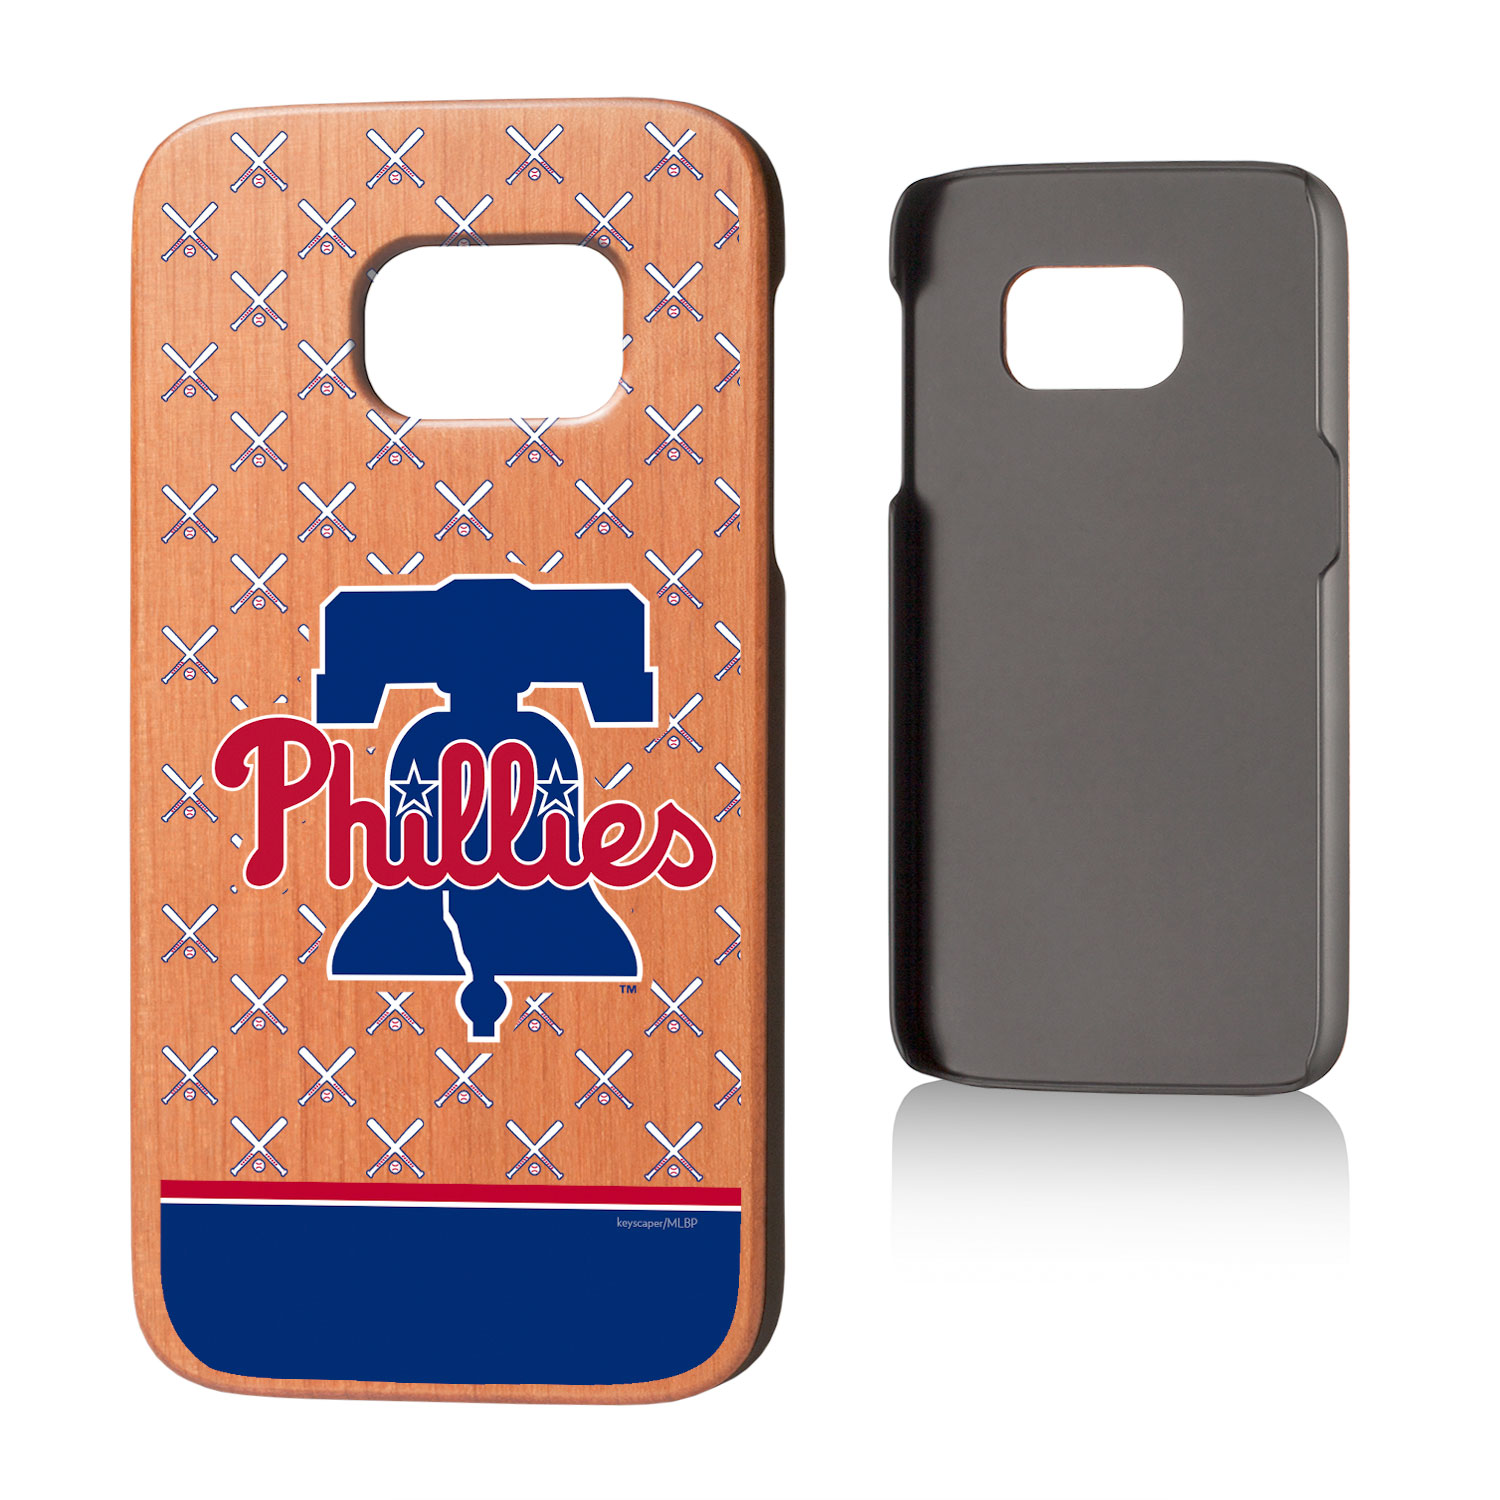 Philadelphia Phillies Galaxy S7 Stripe Cherry Wood Case